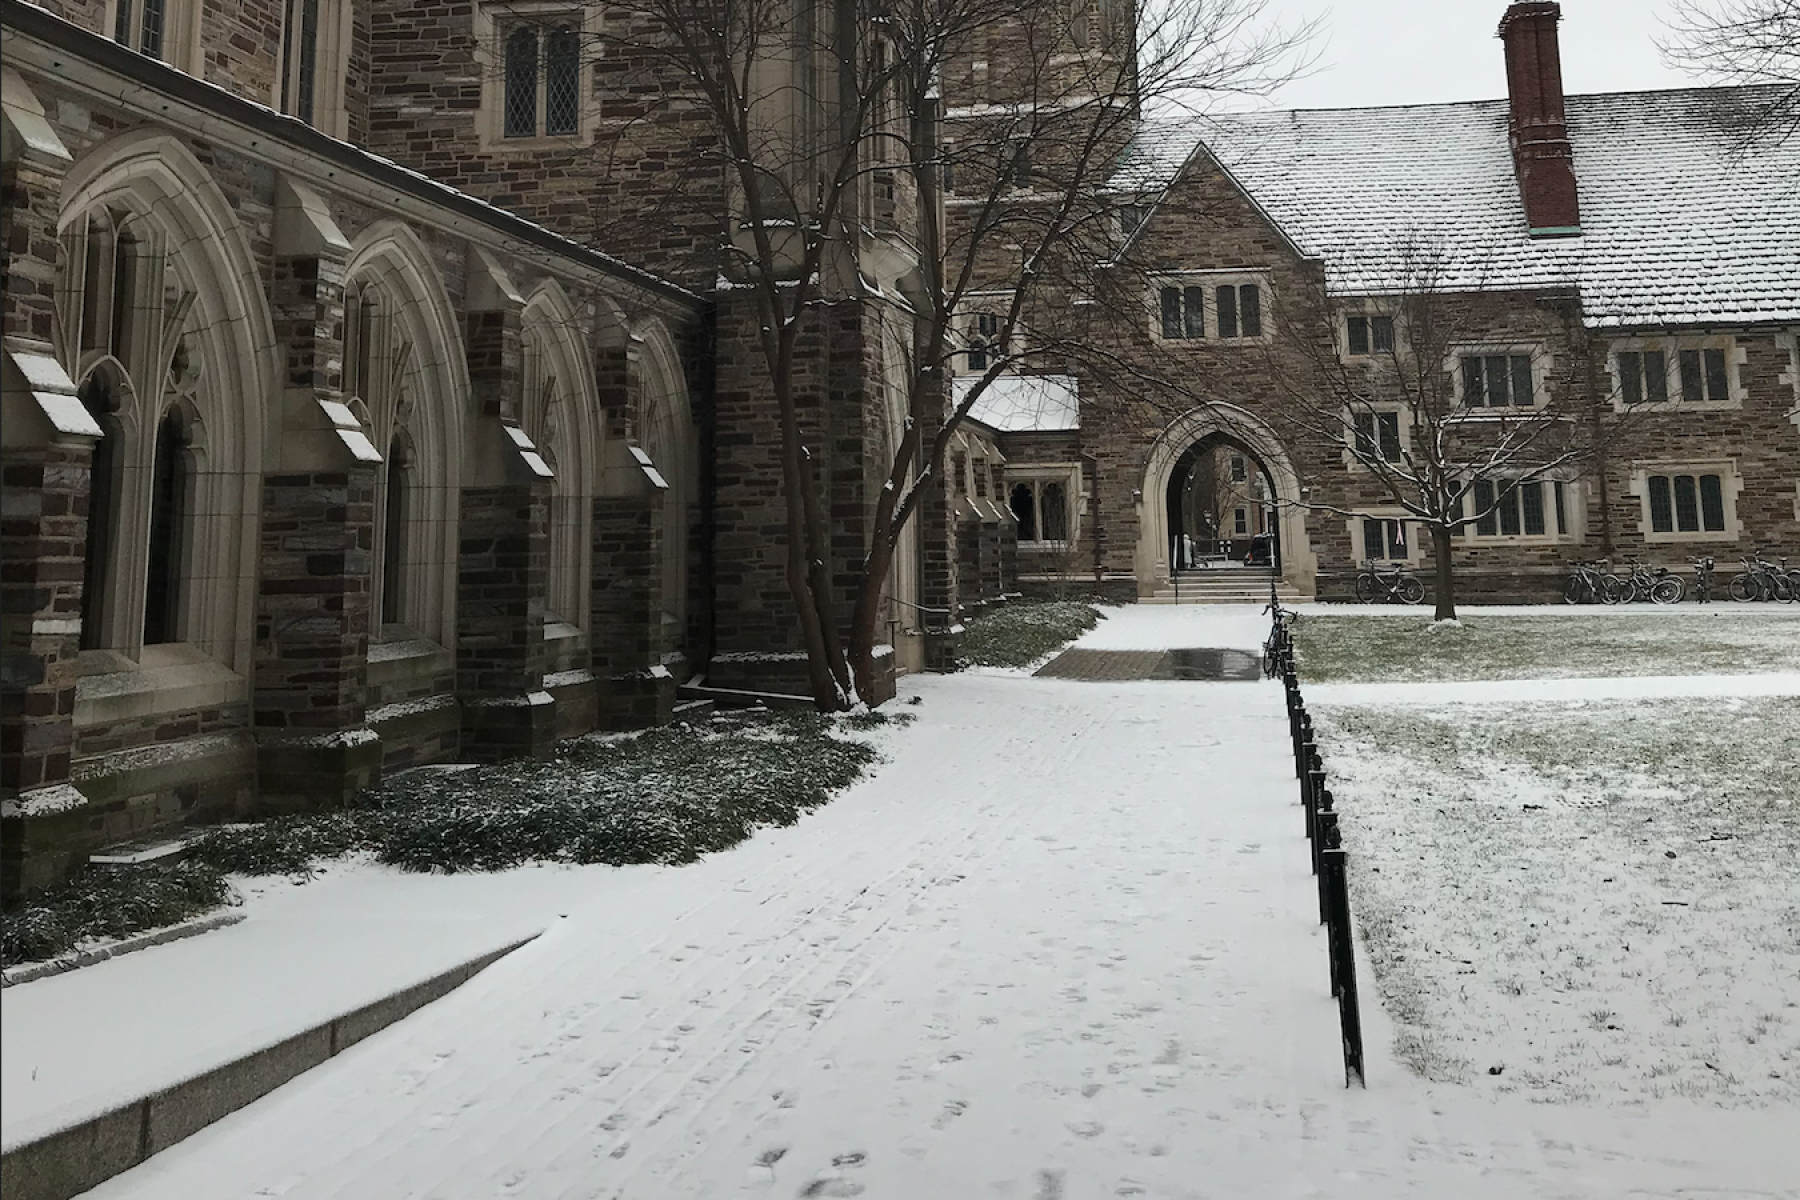 Mathey College courtyard with an inch of snow on the ground. There are footprints visible in the snow along the walkways.